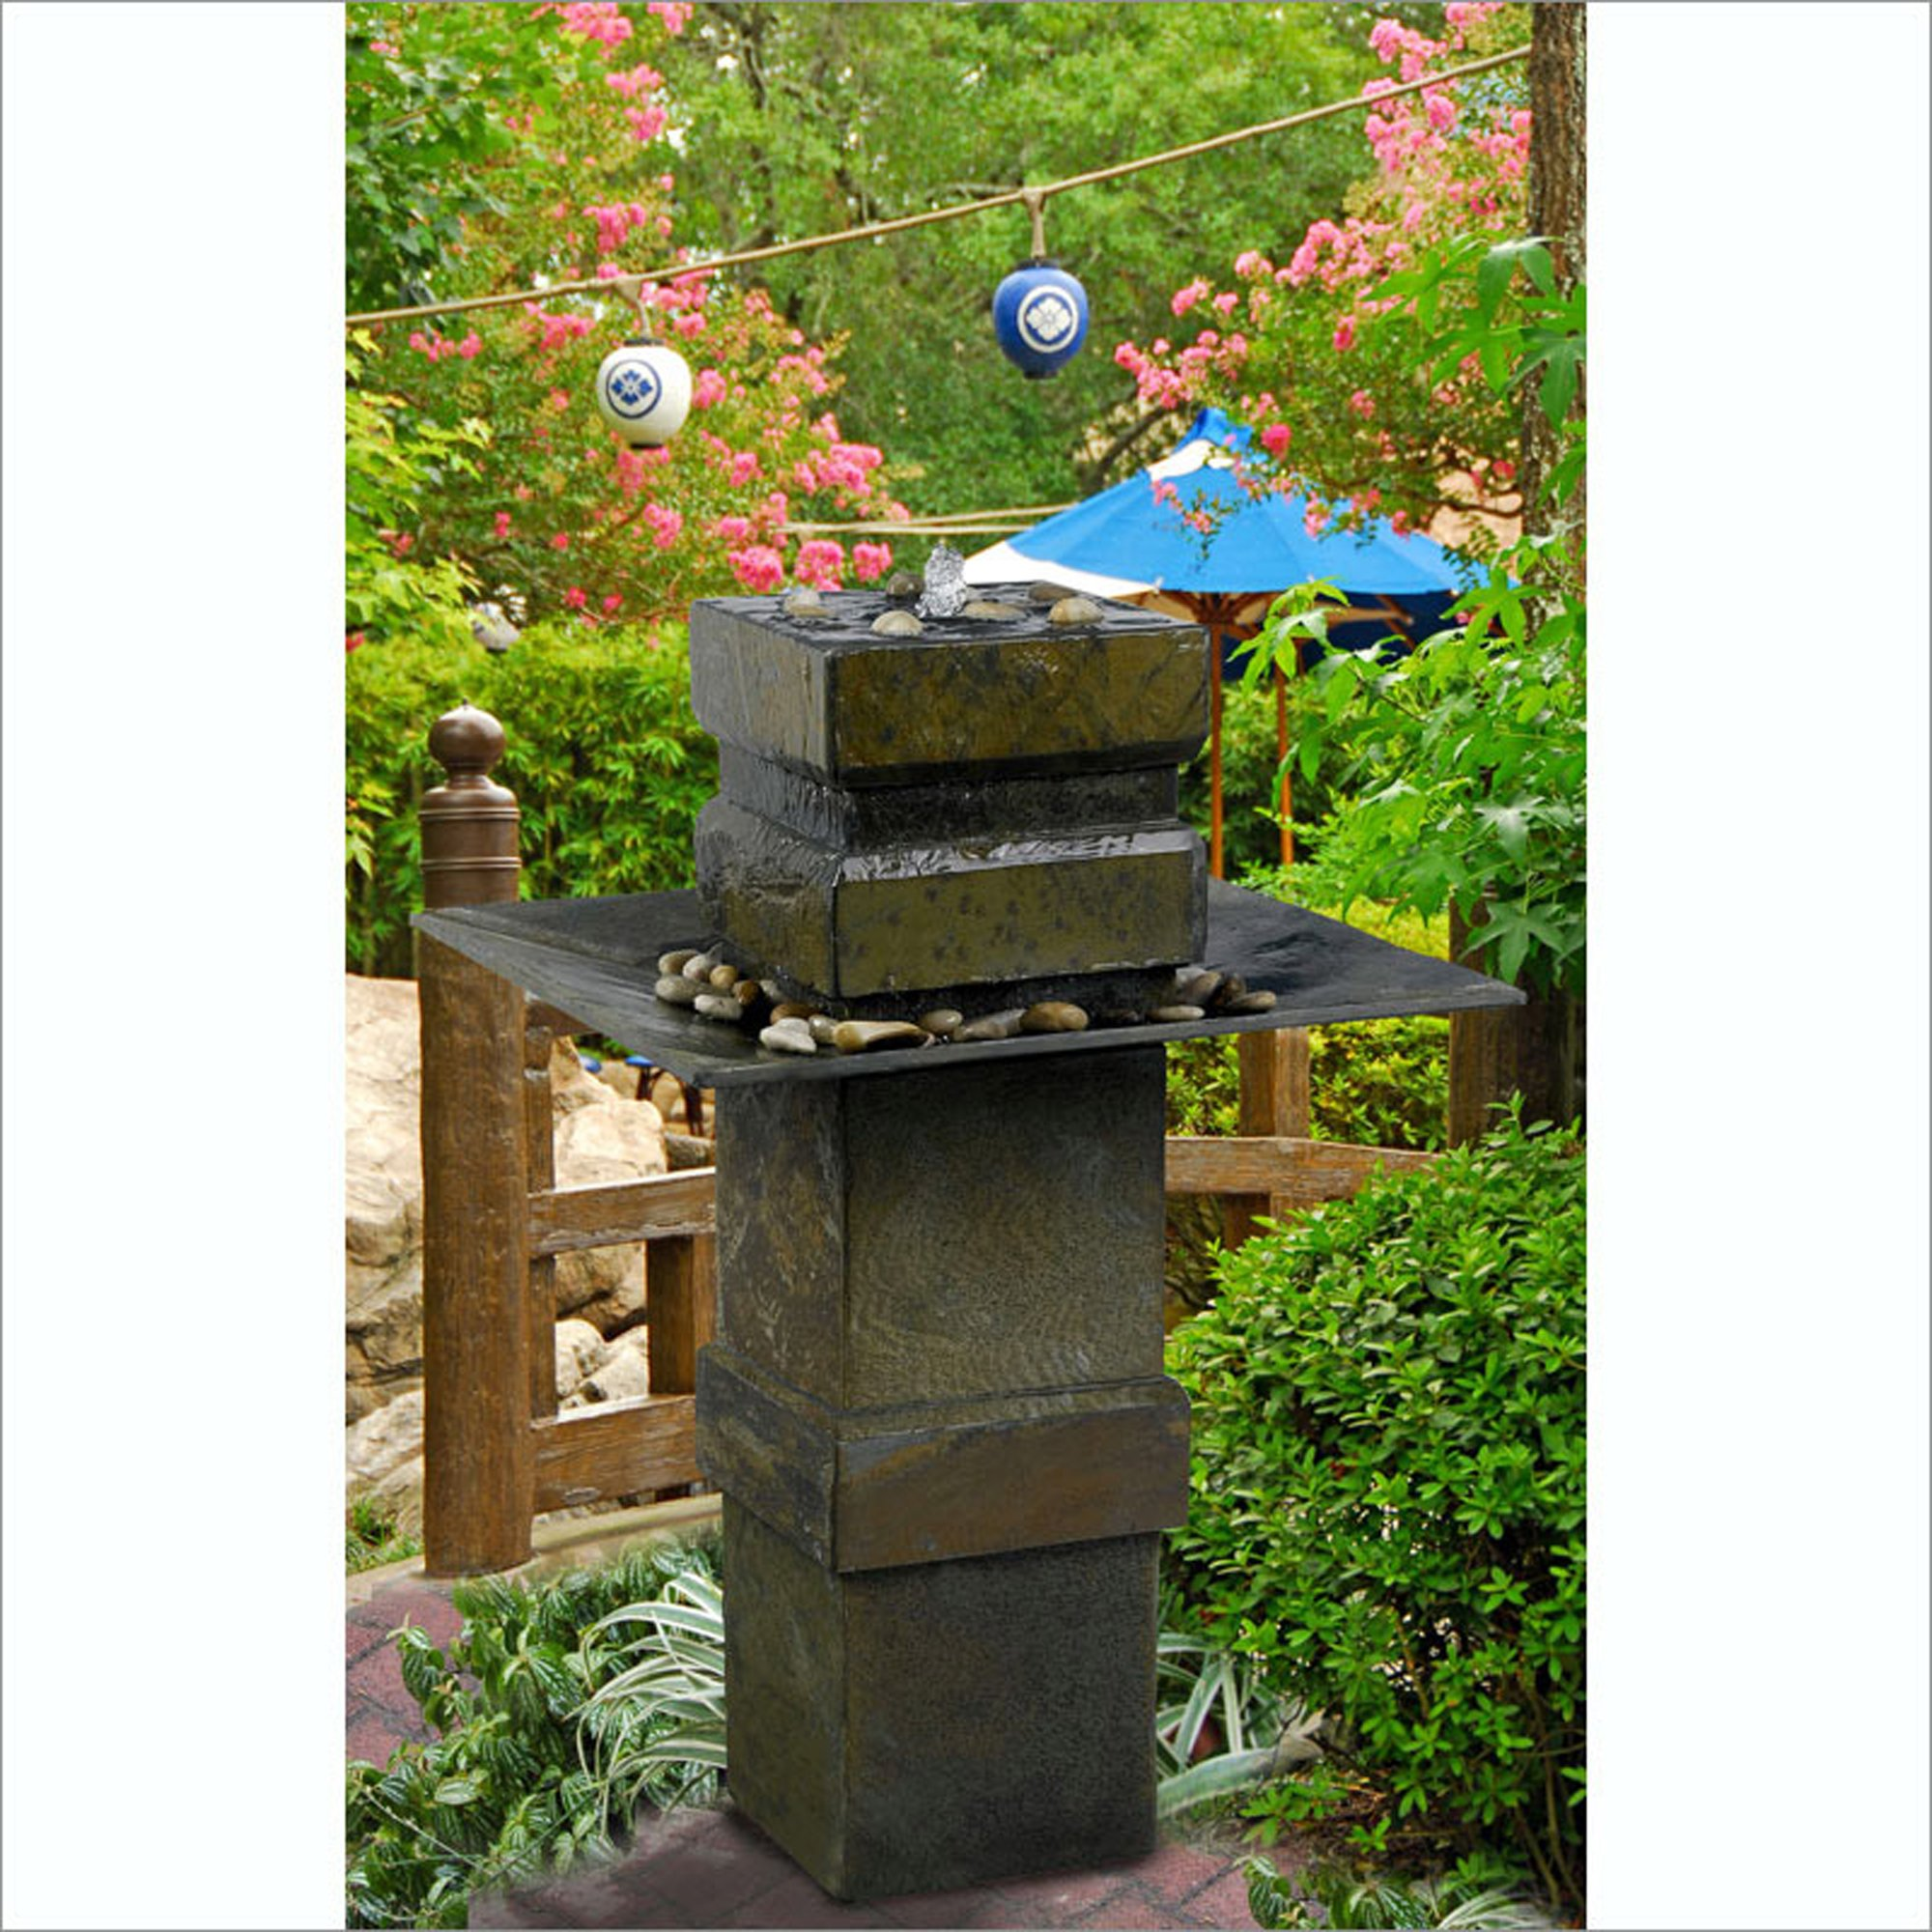 Kenroy Home Cubist Outdoor Floor Fountain in Natural Slate finish is 32.75'' high by Kenroy Home